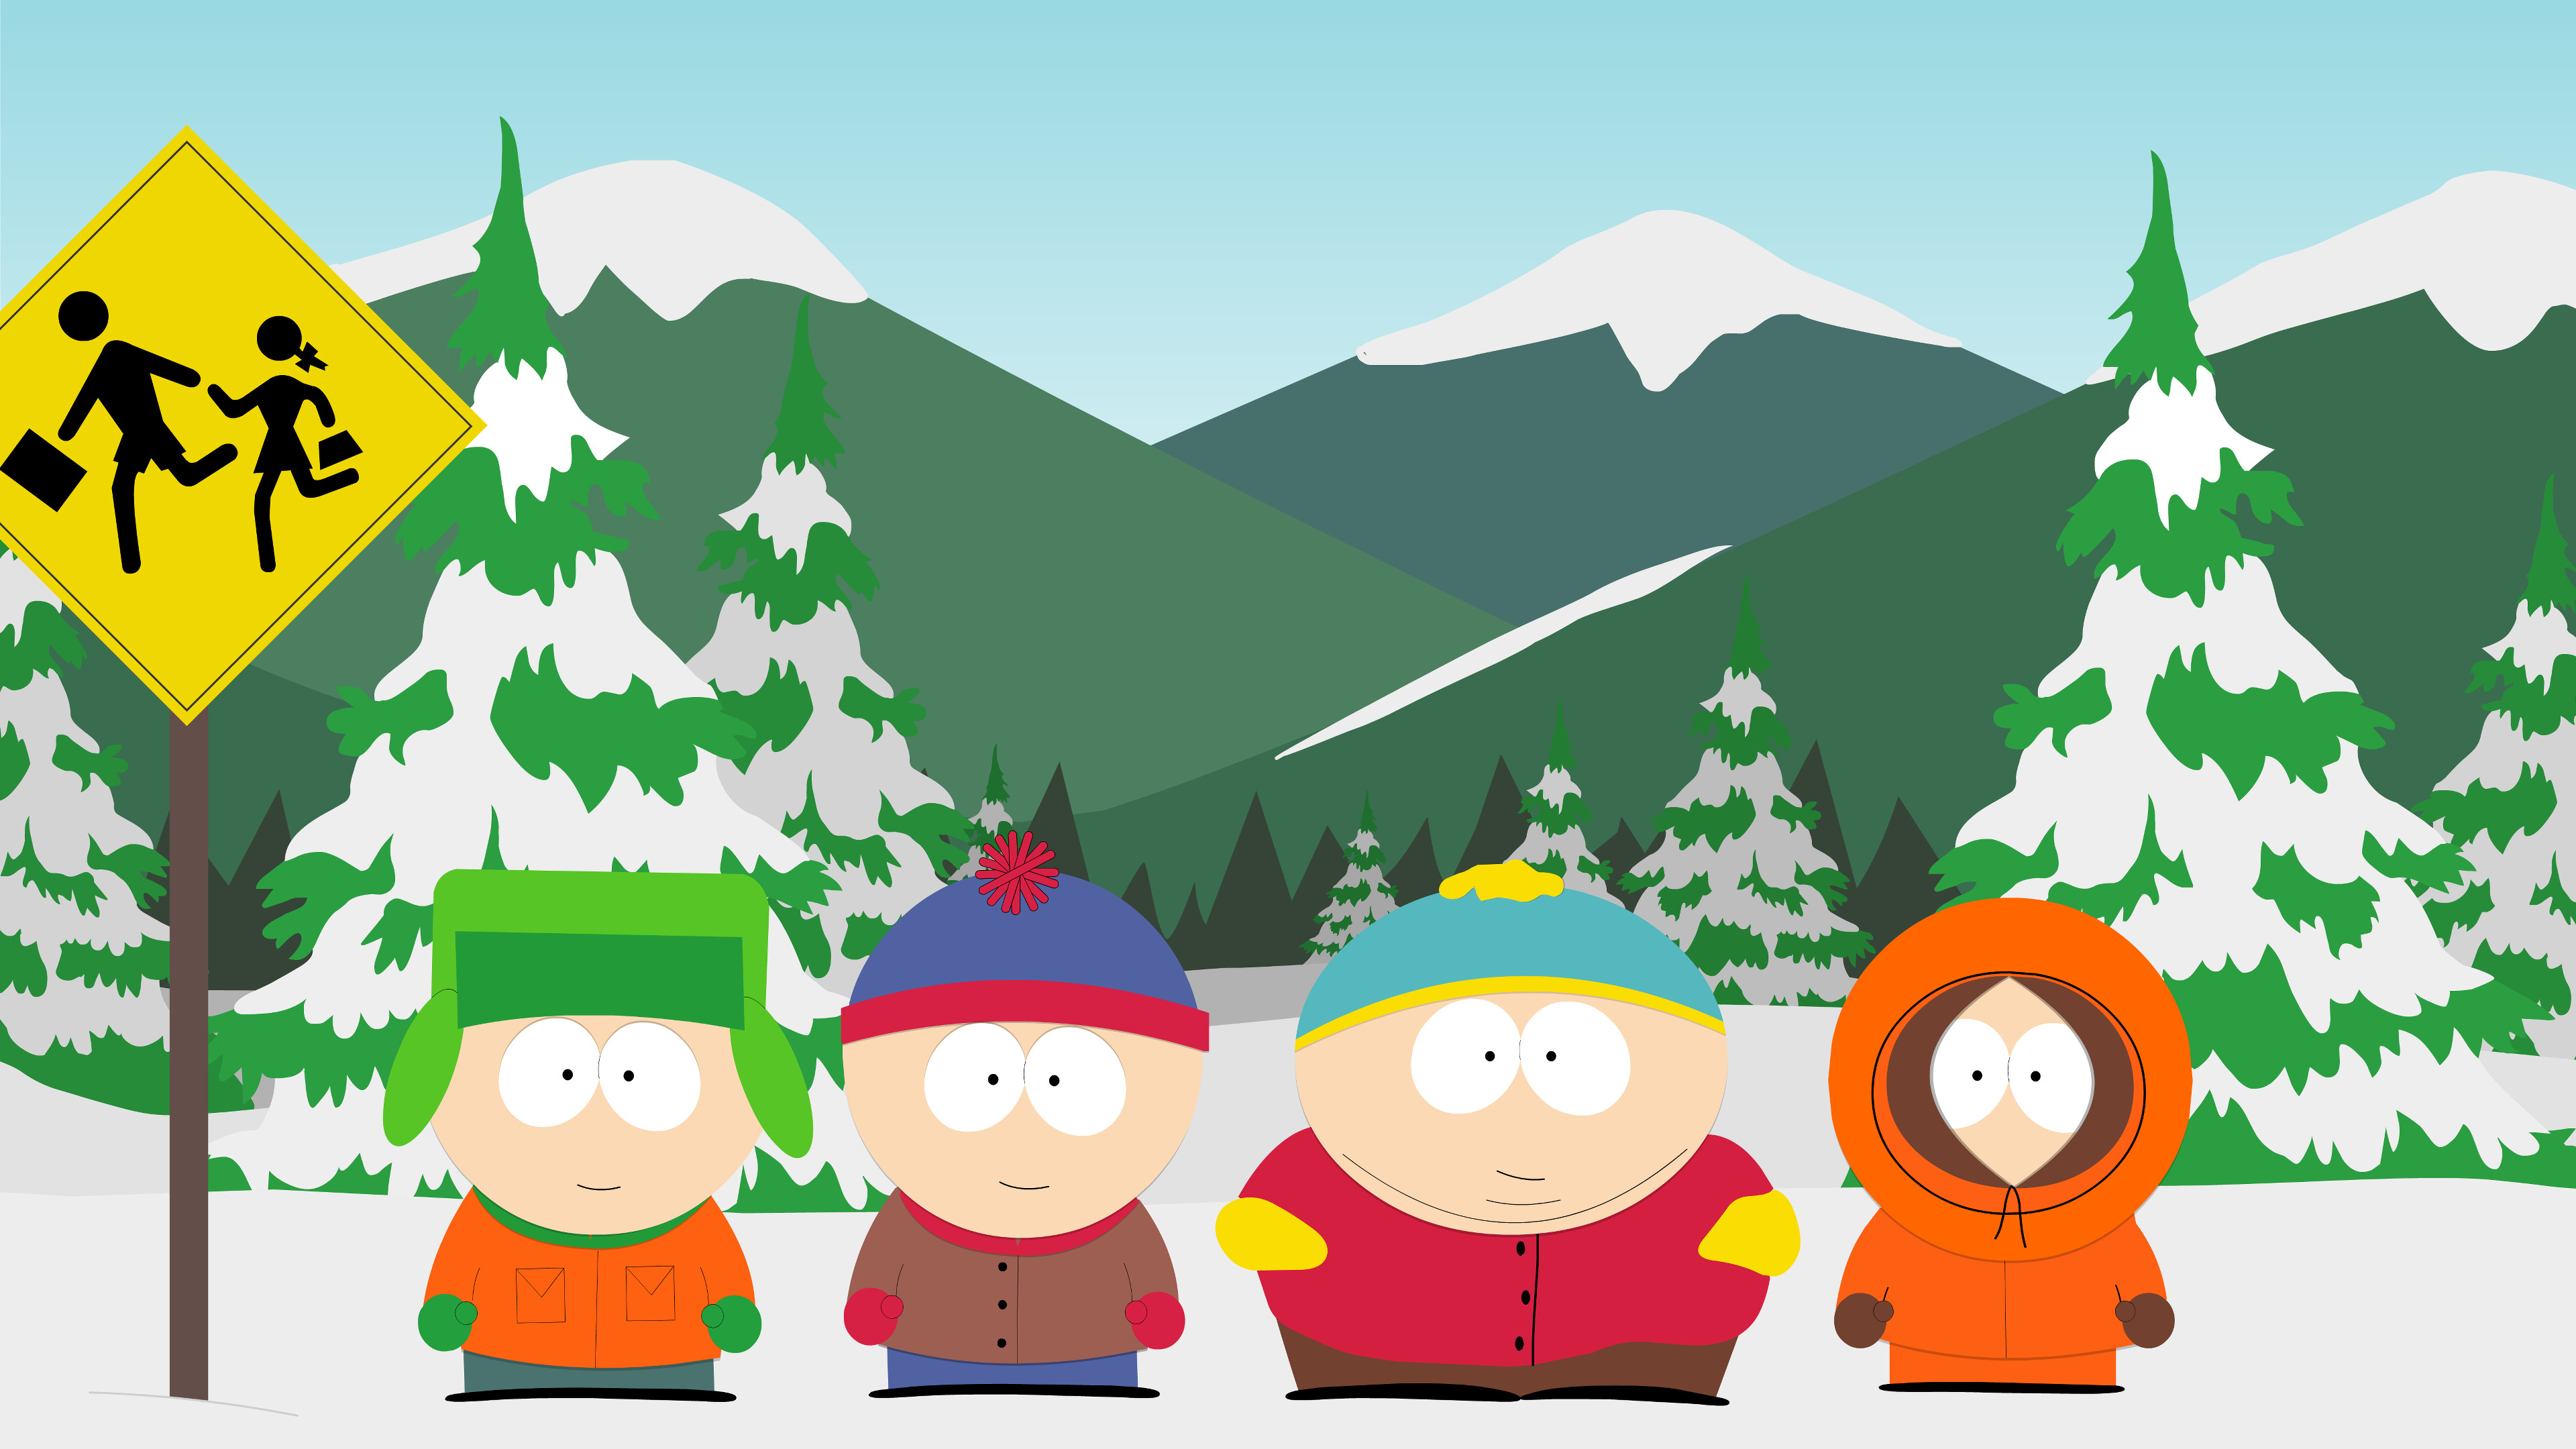 3840x2160 Eric Cartman South Park · HD Wallpaper | Background Image ID:590805